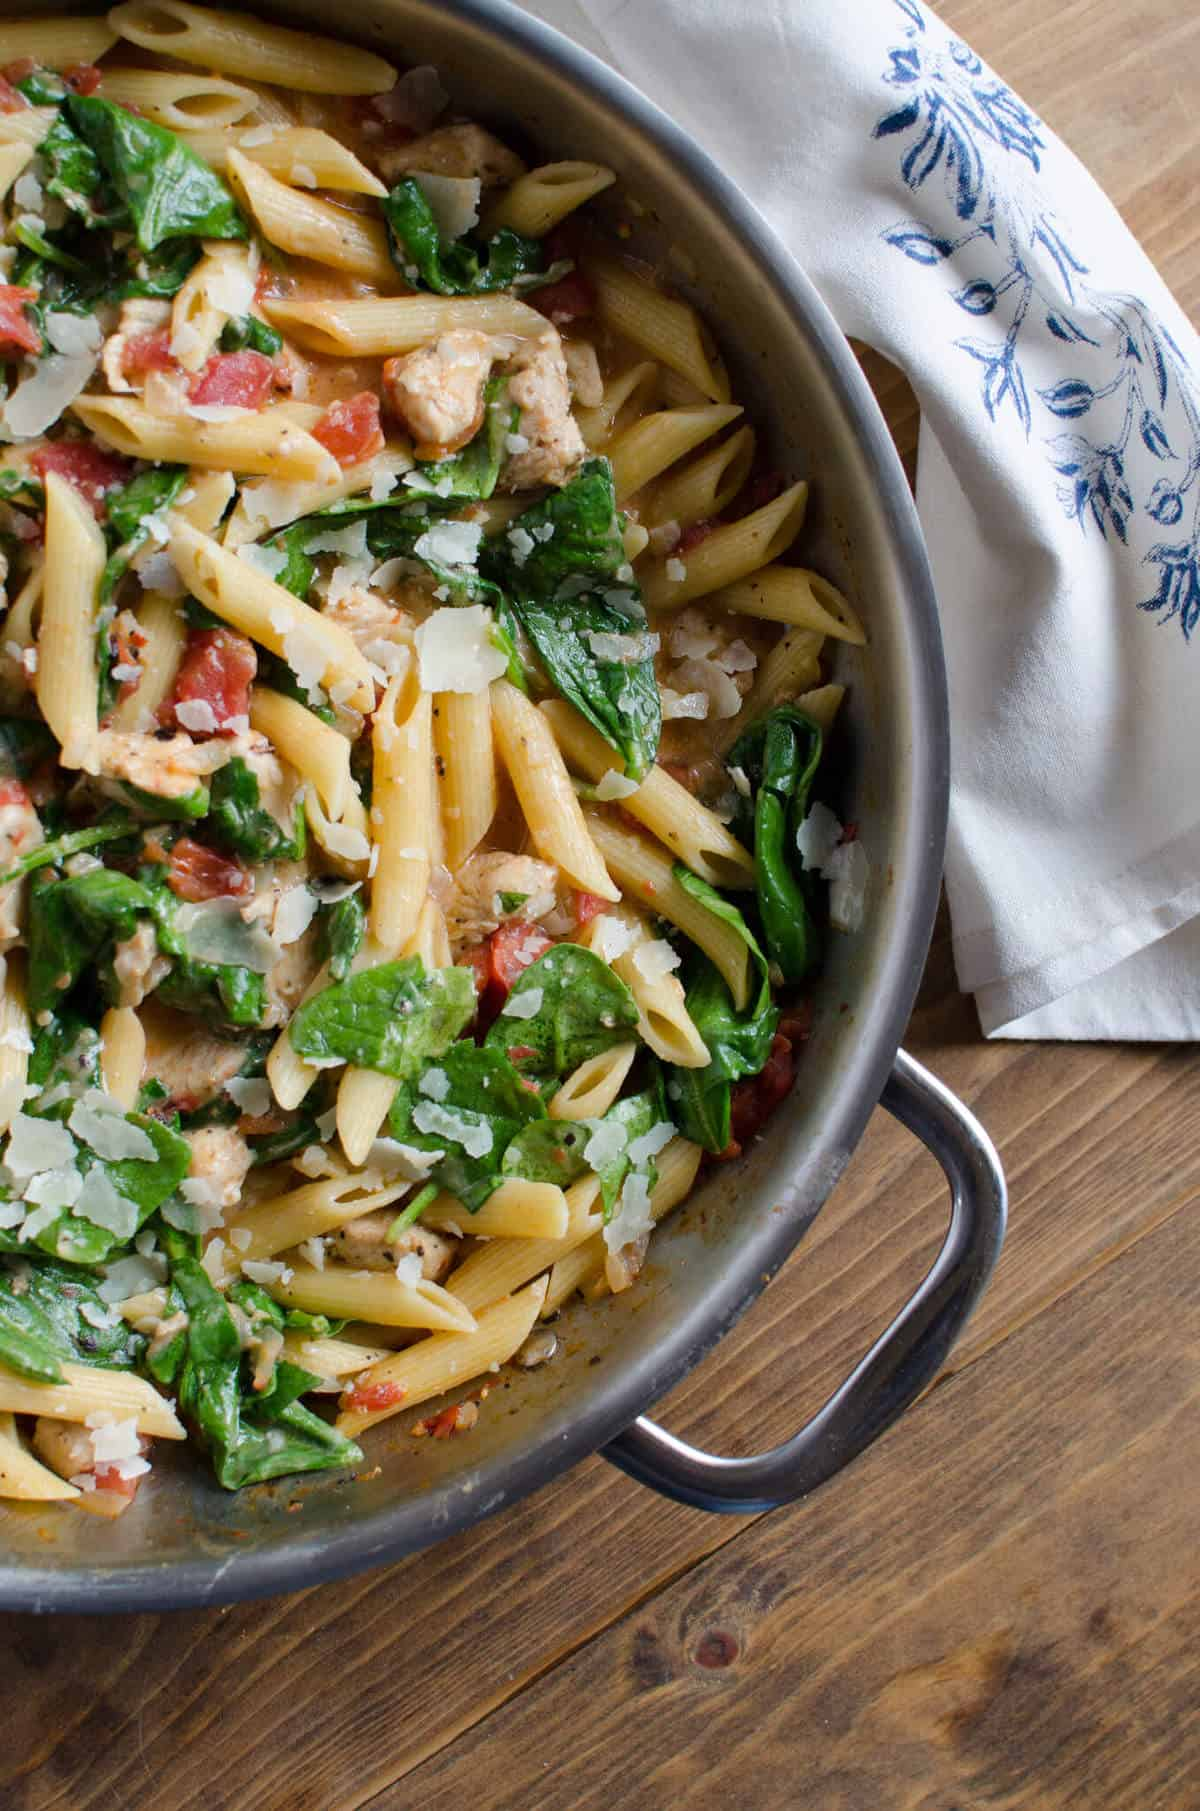 Chicken and spinach skillet pasta valeries kitchen this chicken and spinach skillet pasta requires just one pan and 30 minutes to prepare forumfinder Choice Image